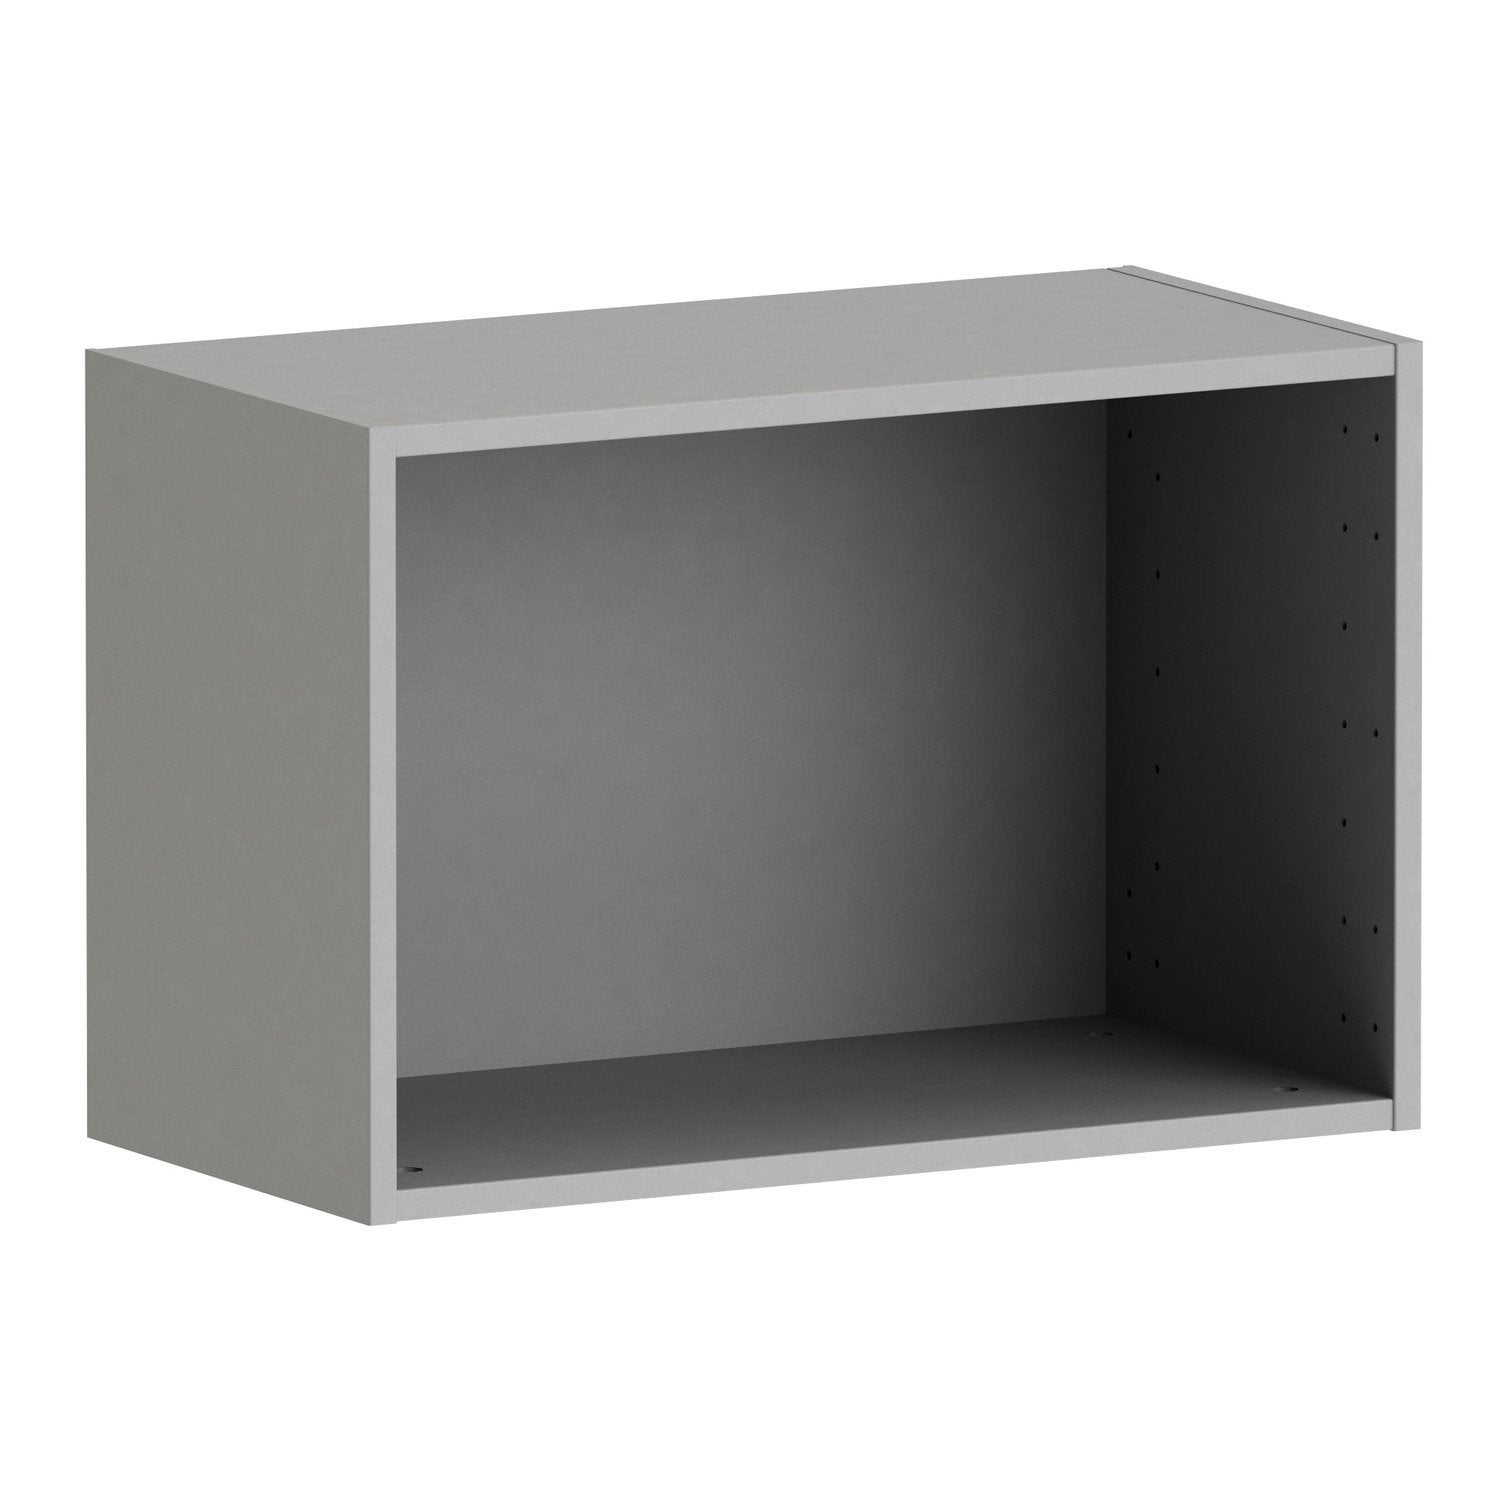 Caisson spaceo home 40 x 60 x 30 cm anthracite leroy merlin - Caisson armoire leroy merlin ...